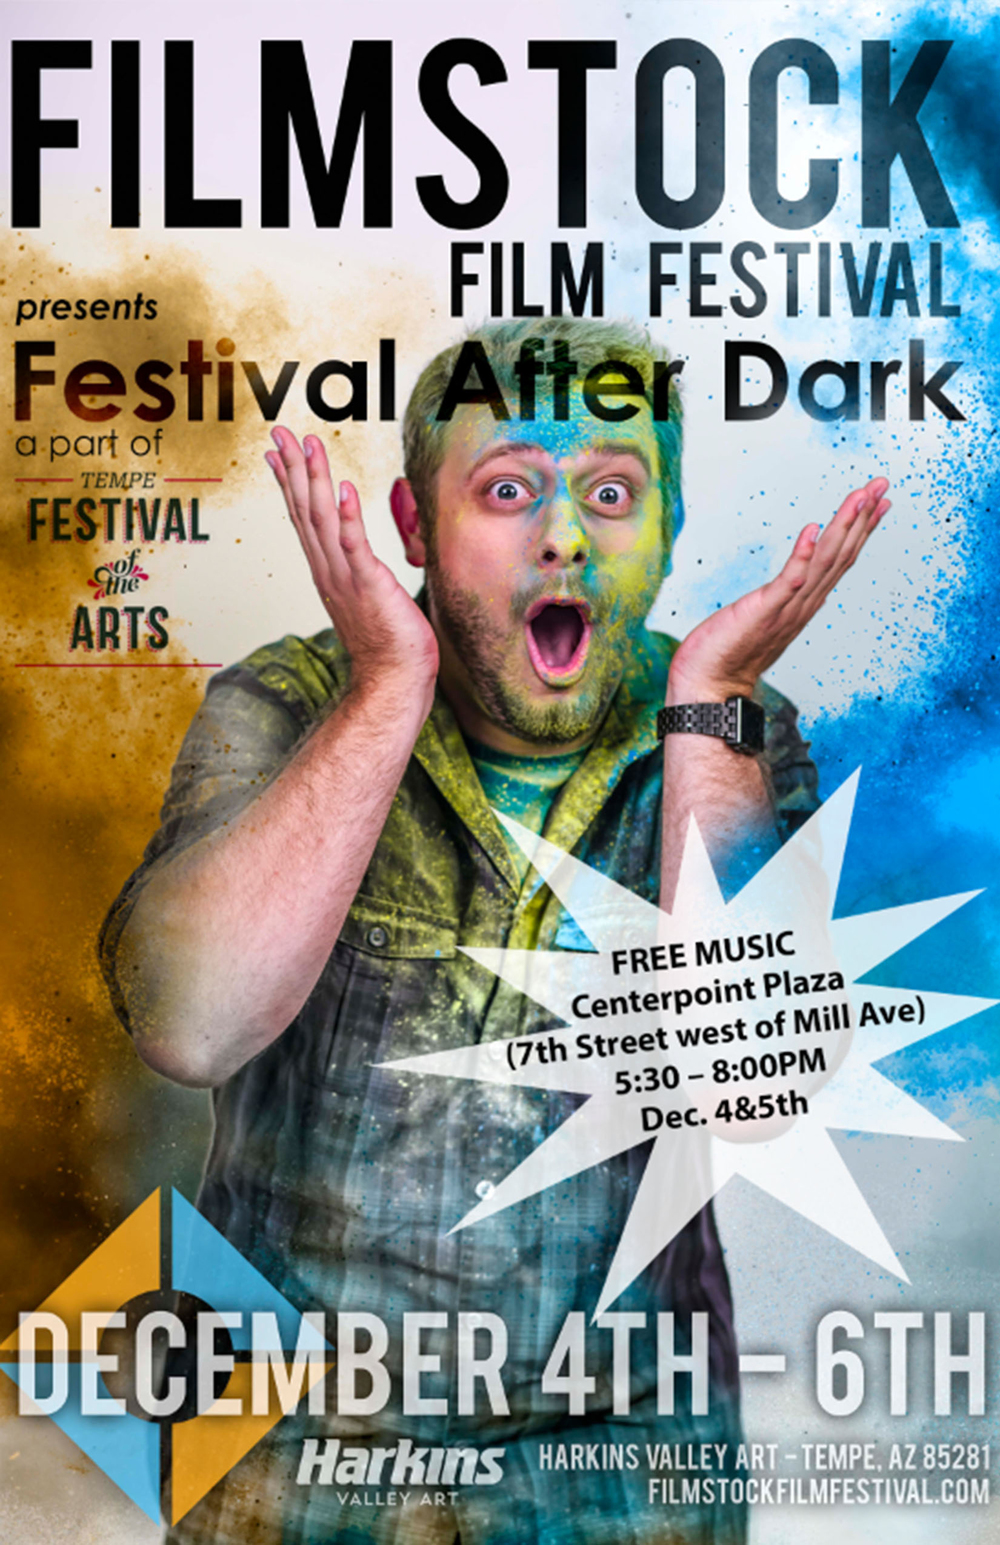 Filmstock is proud to sponsor the Festival After Dark portion of the Tempe Festival of the Arts!  FRIDAY - 5:30PM SUGAR THIEVES SATURDAY - 5:30PM SUGAHBEAT